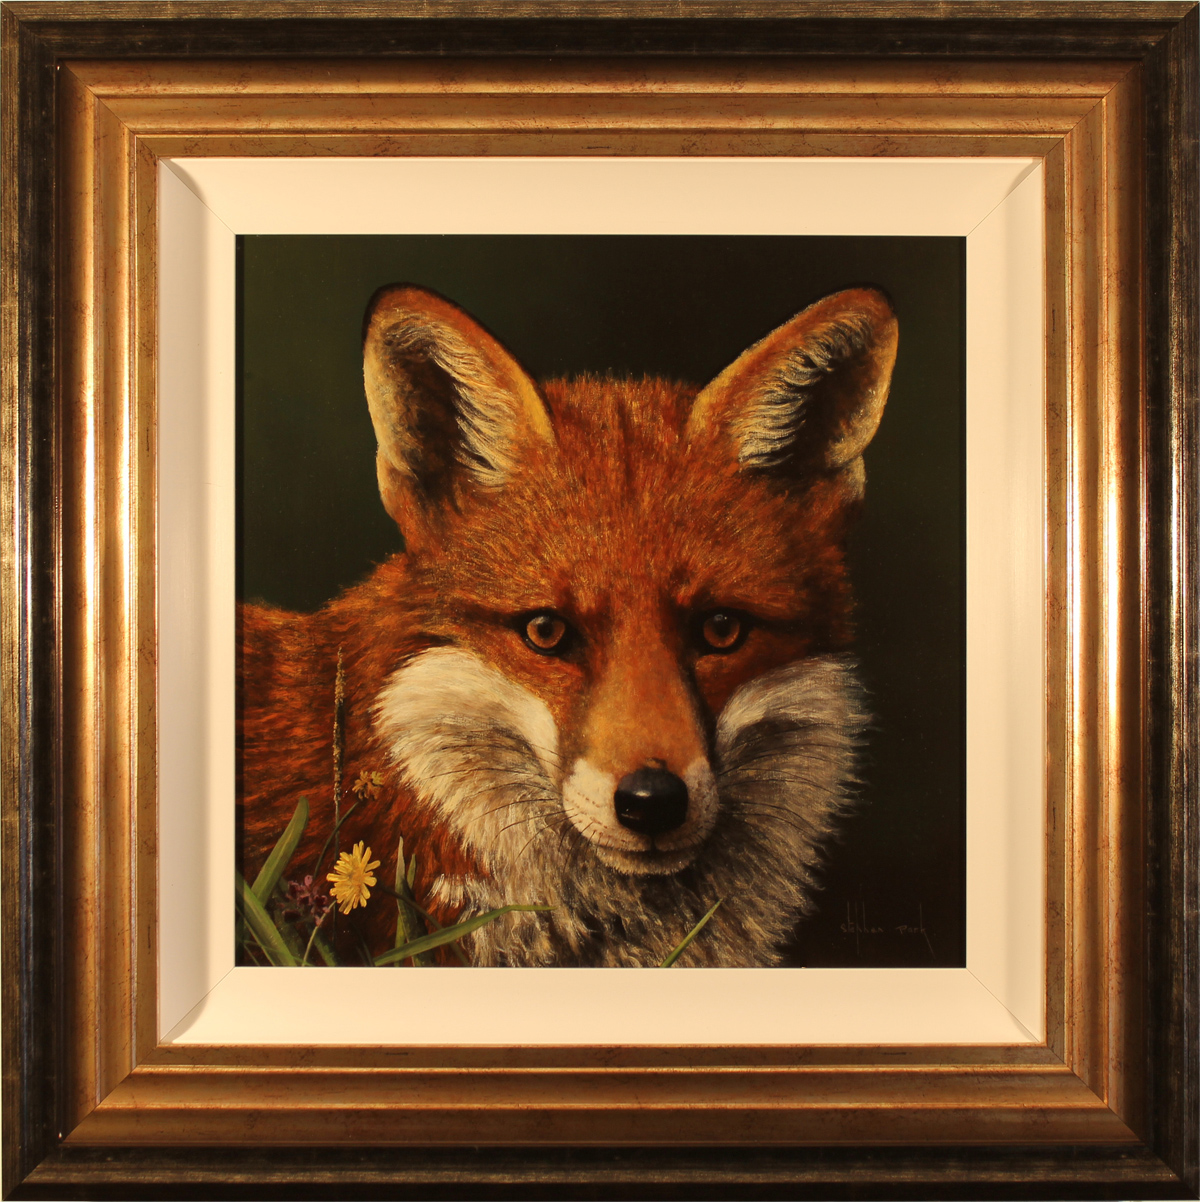 Stephen Park, Original oil painting on panel, Fox Click to enlarge